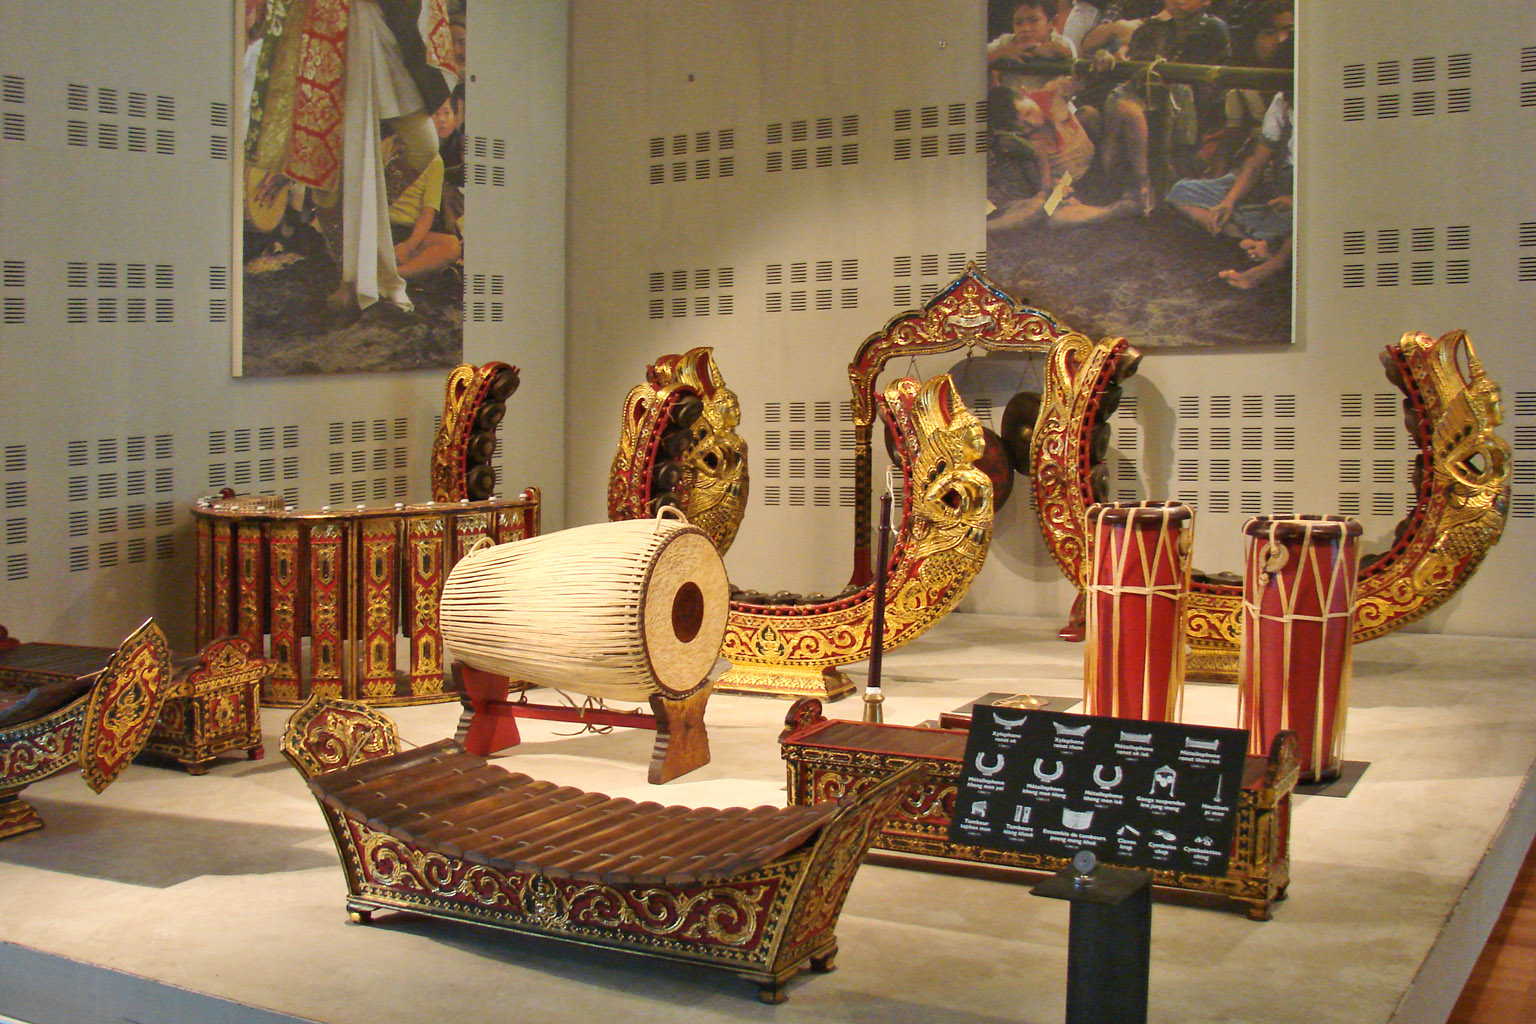 Instruments of a piphat mon orchestra exhibited at the Cité de la Musique, Paris, France. The piphat mon is believed to derive from the Mon people, an ancient Mon-Khmer-speaking people of mainland Southeast Asia, and uses special instruments such as an upright gong circle called khong mon. Wong piphat mon (วงปี่พาทย์มอญ) has three types, based on the number and kinds of instruments - piphat mon khrueang ha, piphat mon khrueang khu and piphat mon khrueang yai Photo taken by Jean-Pierre Dalbéra on July 29, 2009.